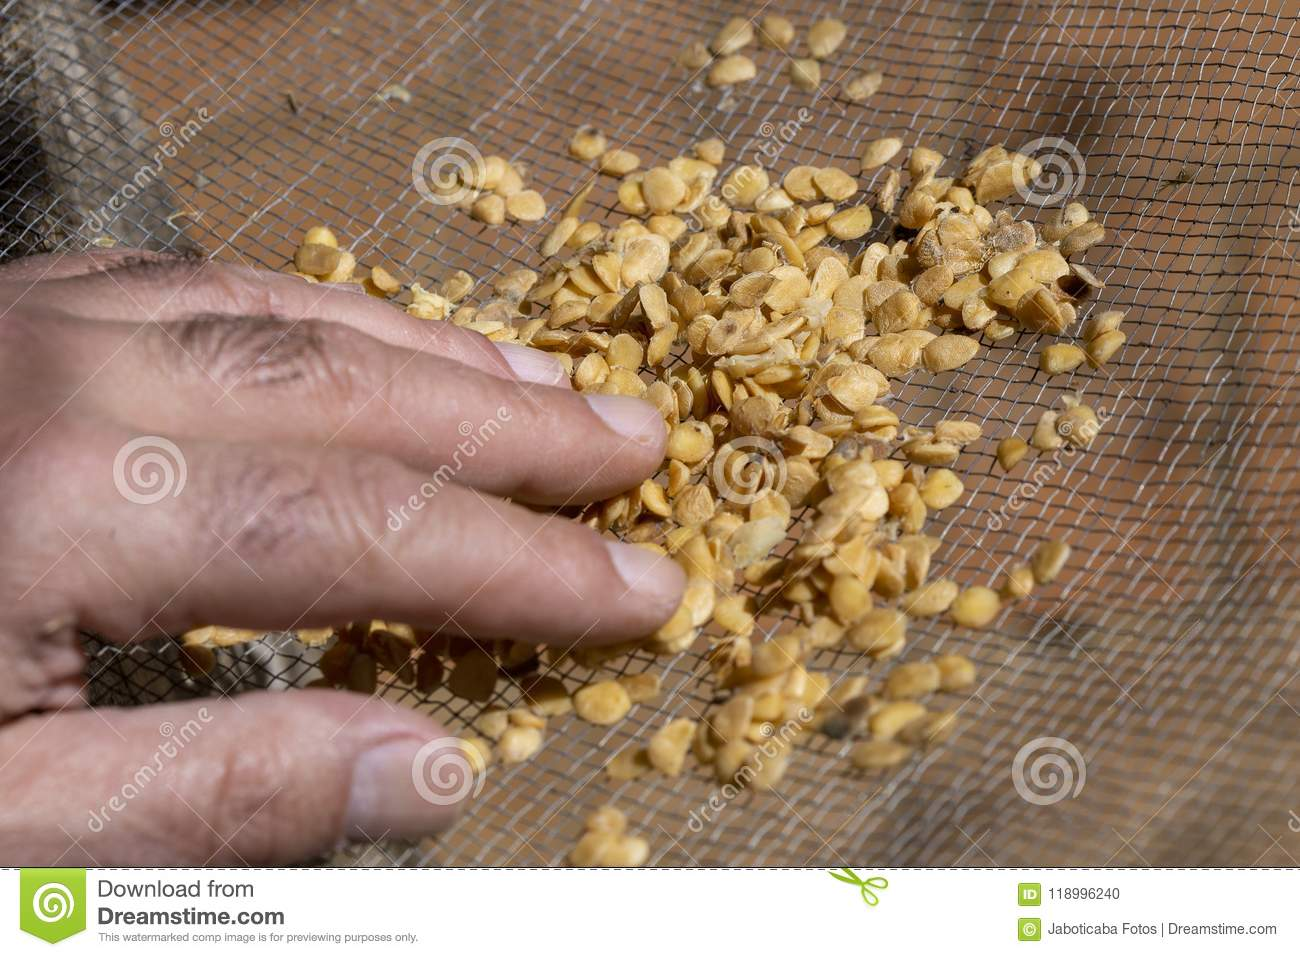 Man Handleing Seeds In The Sieve Stock Photo - Image of